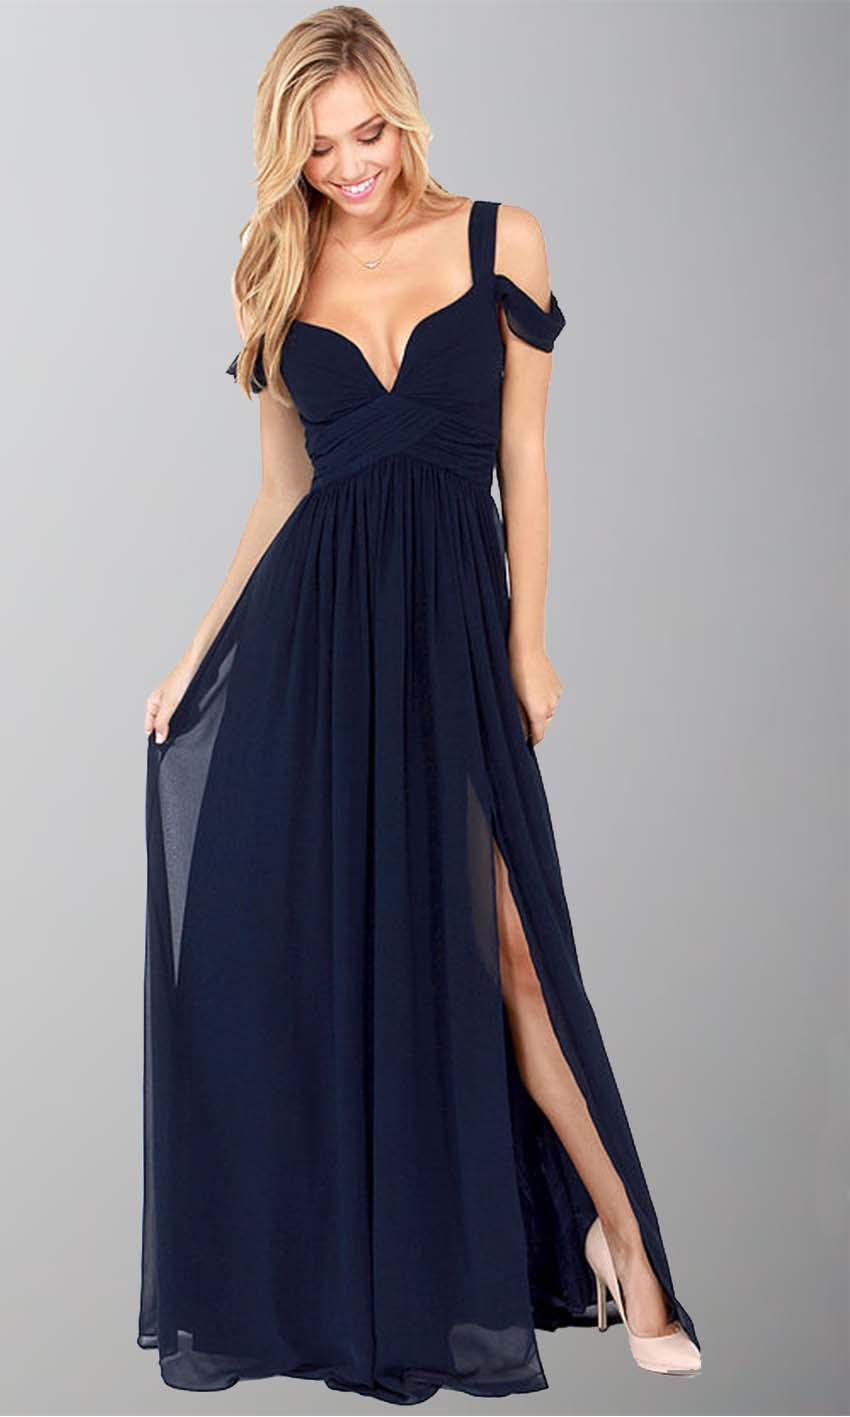 Navy blue off shoulder slit sexy maxi dresses ksp246 for Navy blue maxi dress for wedding